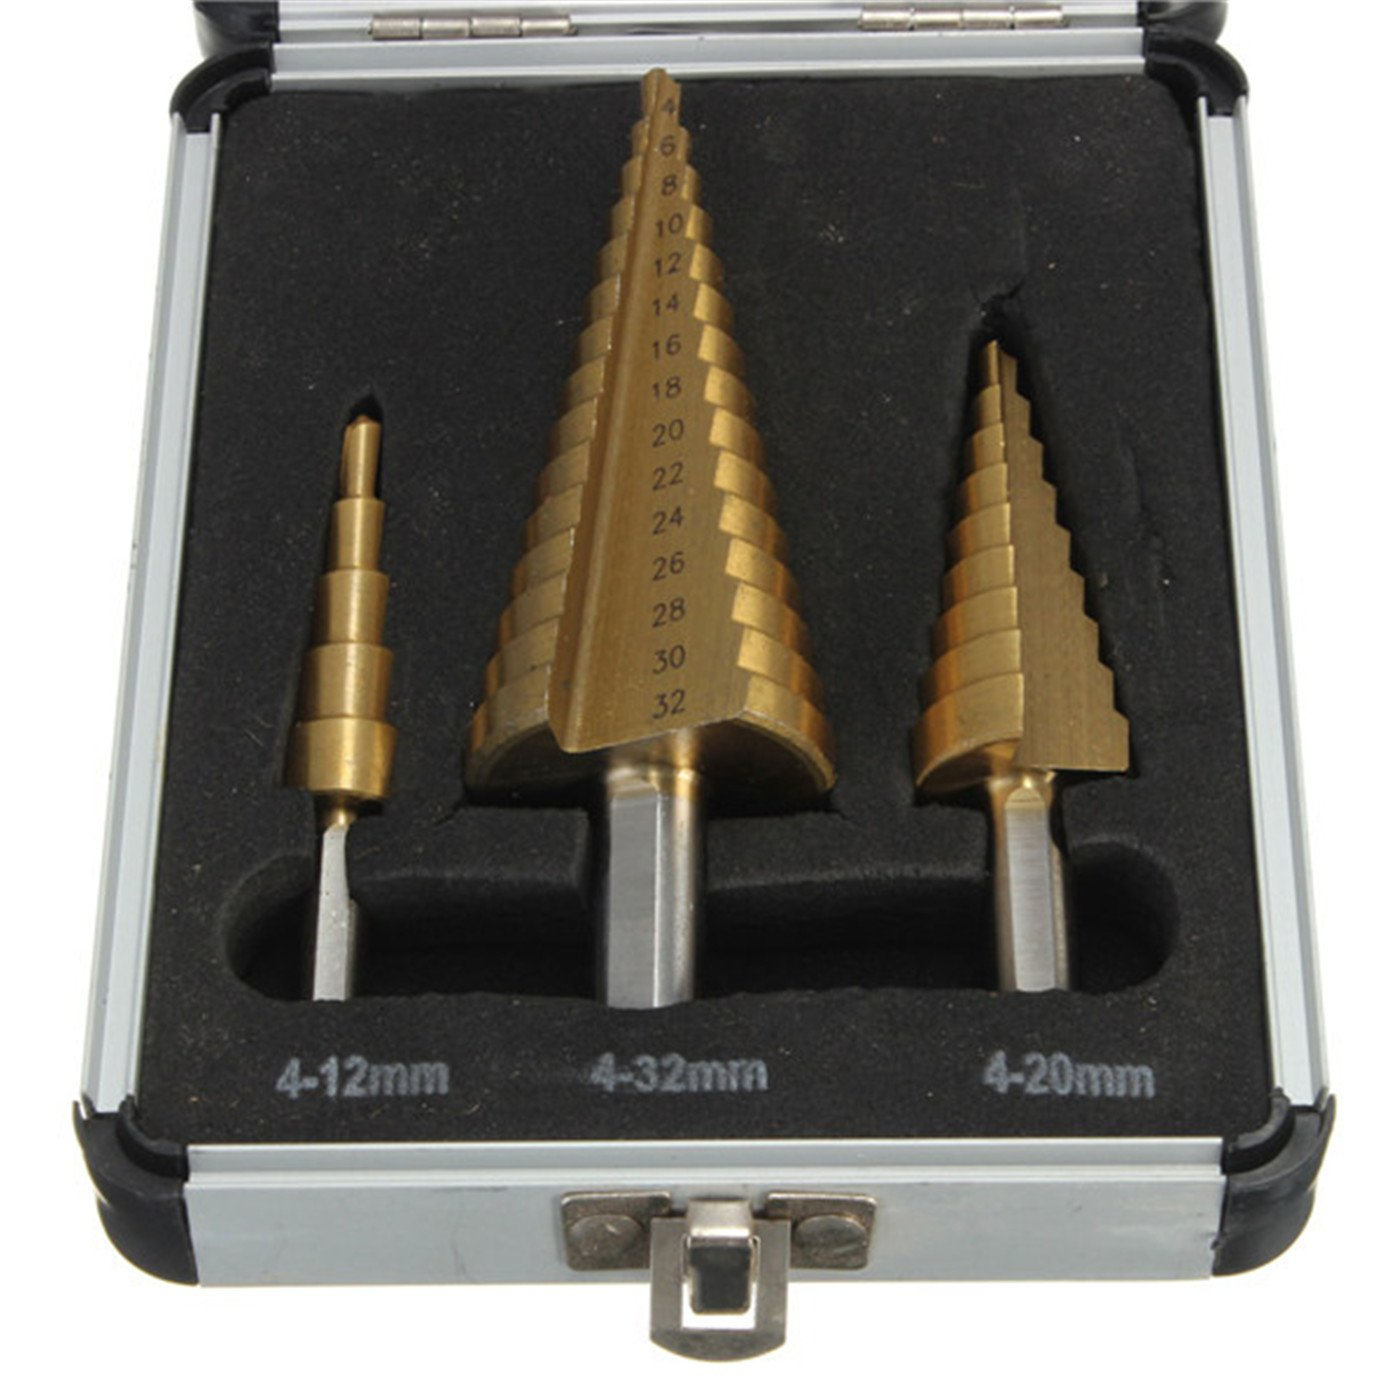 LEXPON SCE014  3-Piece Professional HSS Step Cone Drill Bit Set in Aluminium Box, 4 - 12 / 4 - 20 / 4 - 32  mm 4 - 12 / 4 - 20 / 4 - 32 mm LEXPON.CO. LTD